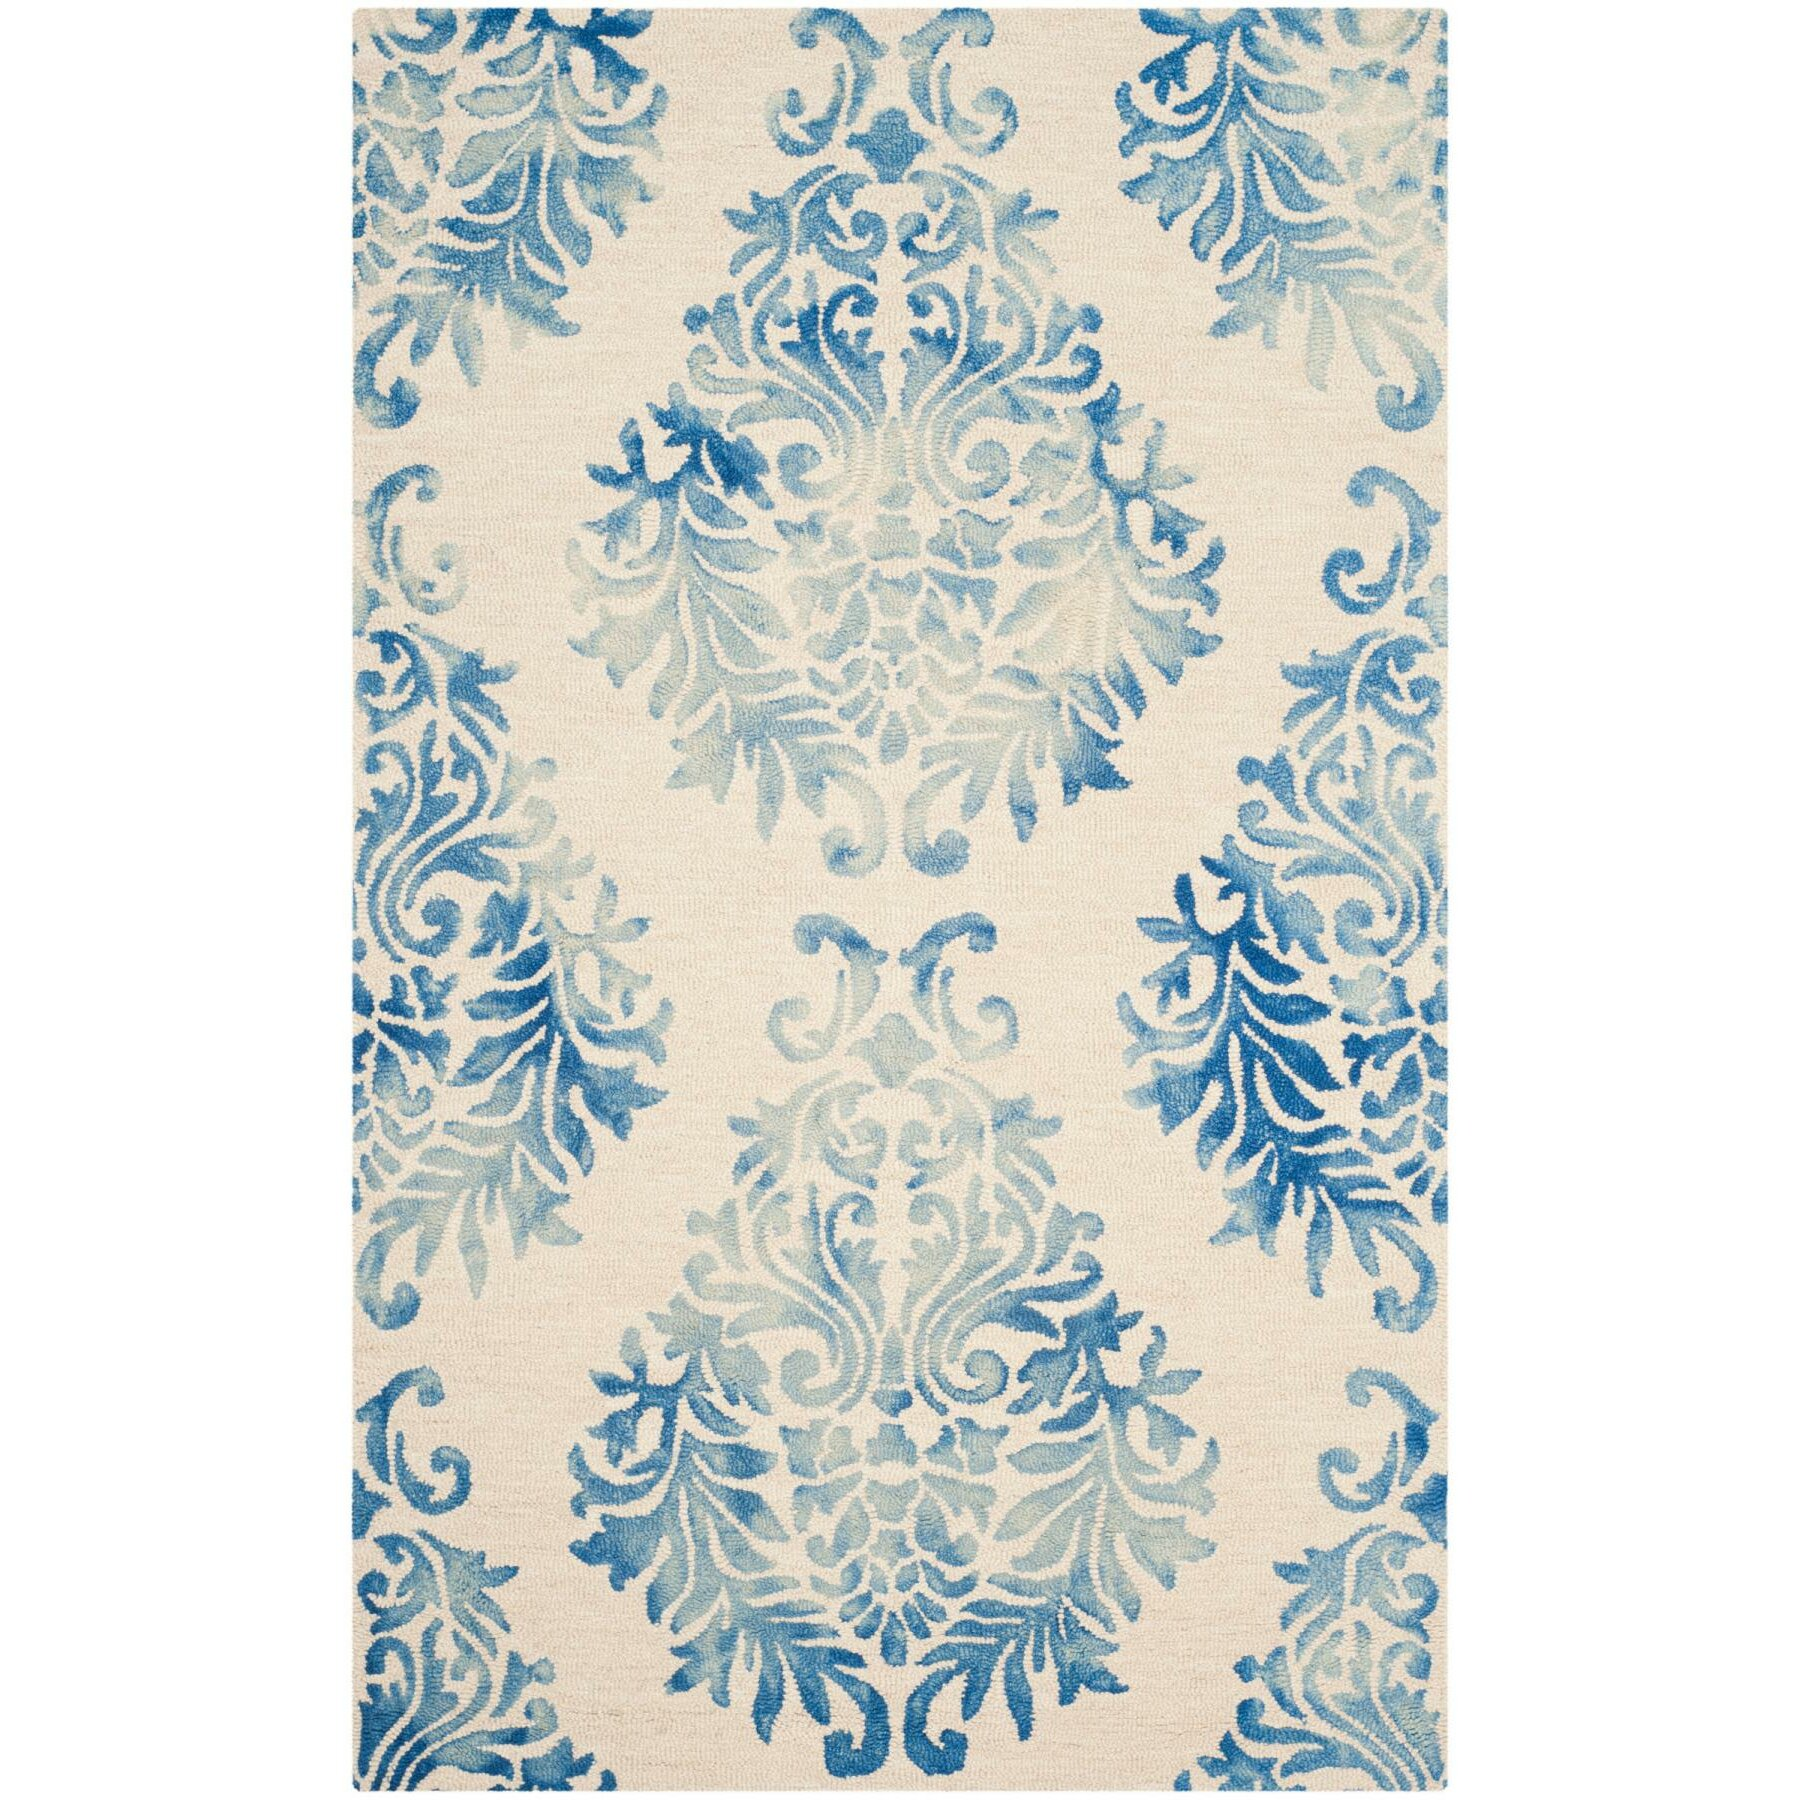 Woolrich Blue And White Floral Rug: Louisa Beige/Blue Floral Wool Hand-Tufted Area Rug